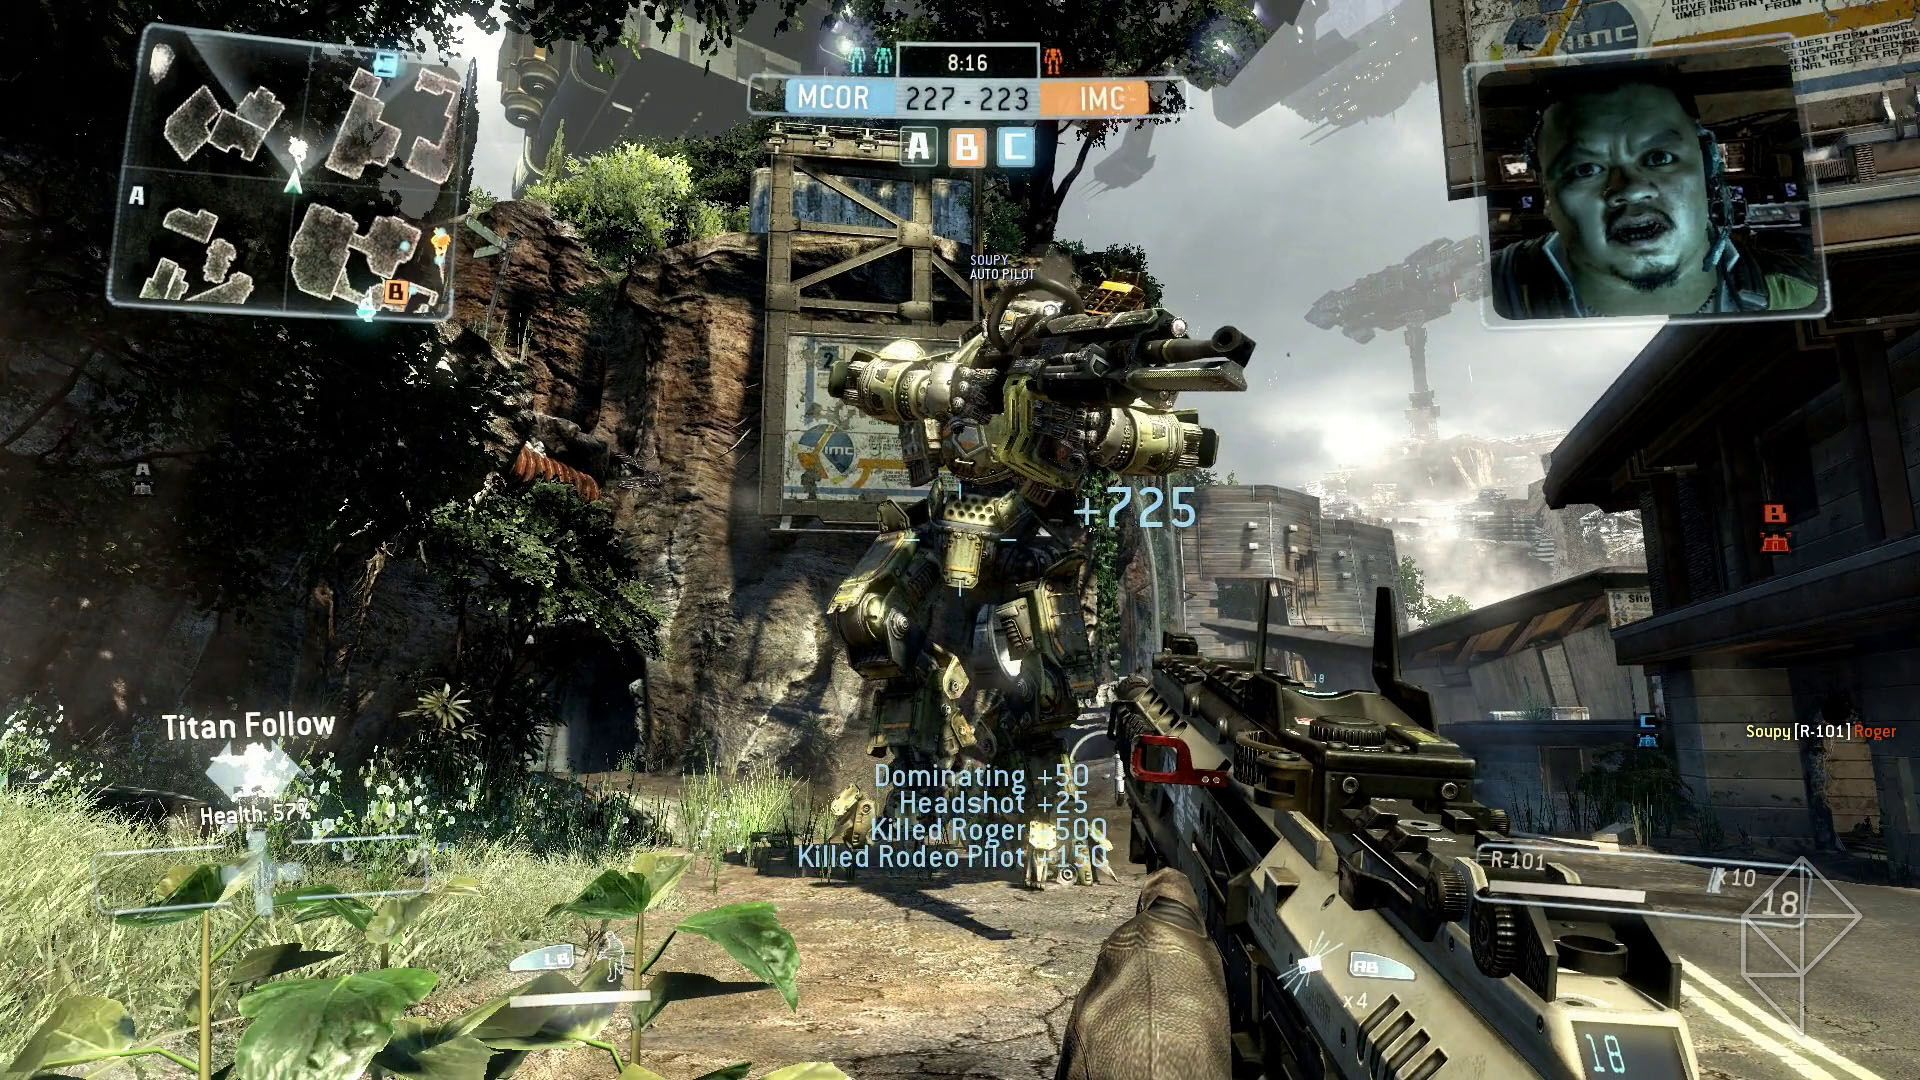 titanfall gameplay | titanfall | pinterest | xbox, games and videogames